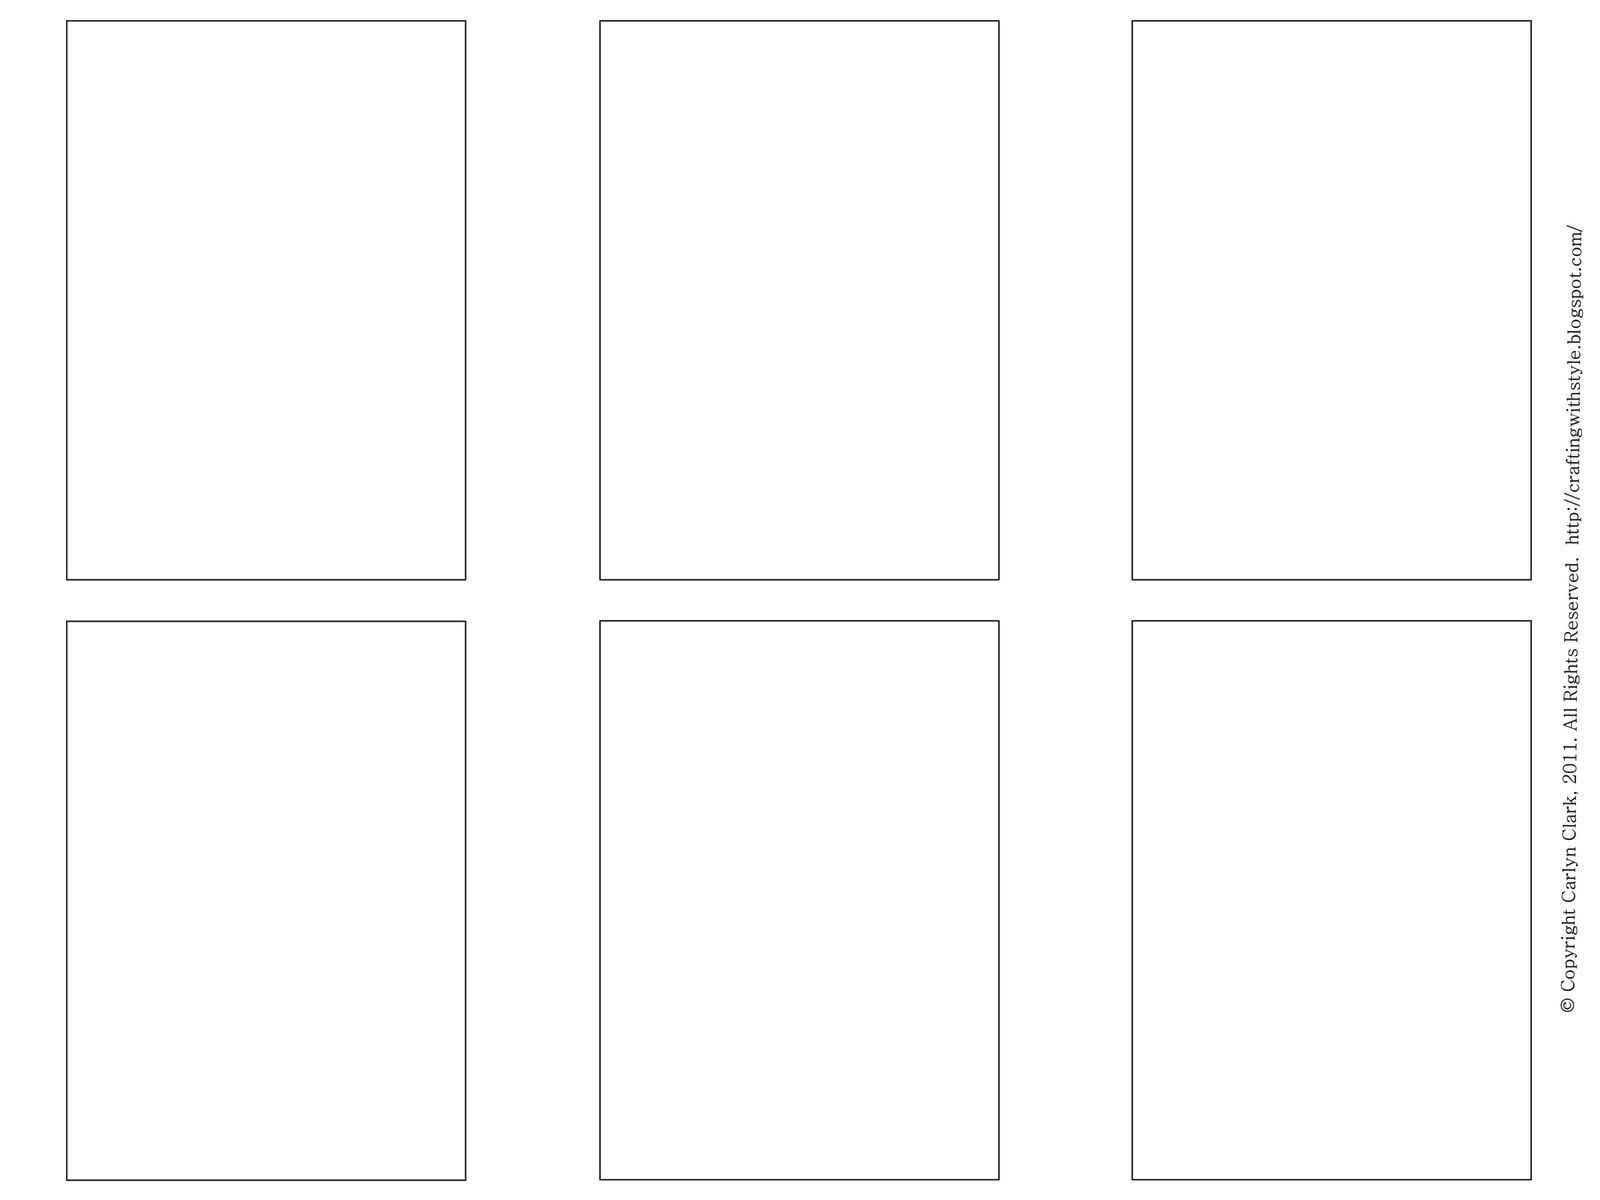 Free Blank Business Card Templates | Free Atc Templates And Artwork - Free Printable Business Card Templates For Teachers